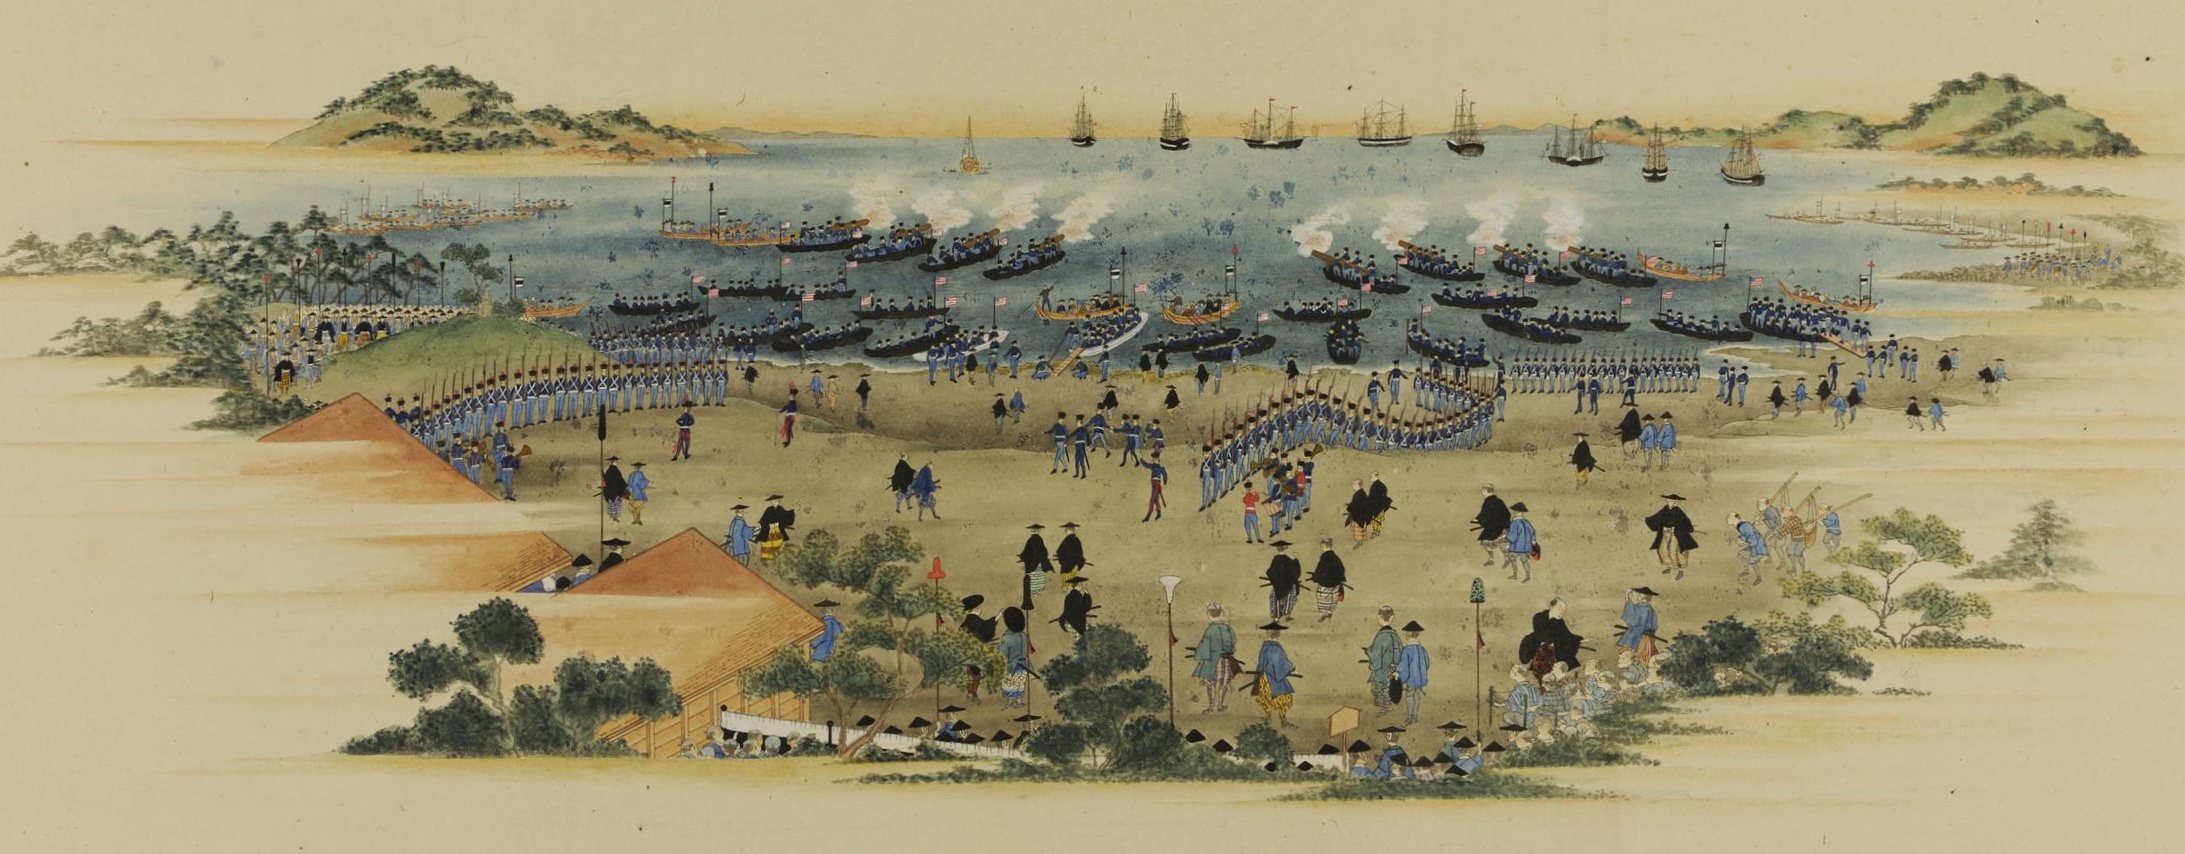 The arrival of the Americans at Yokohama